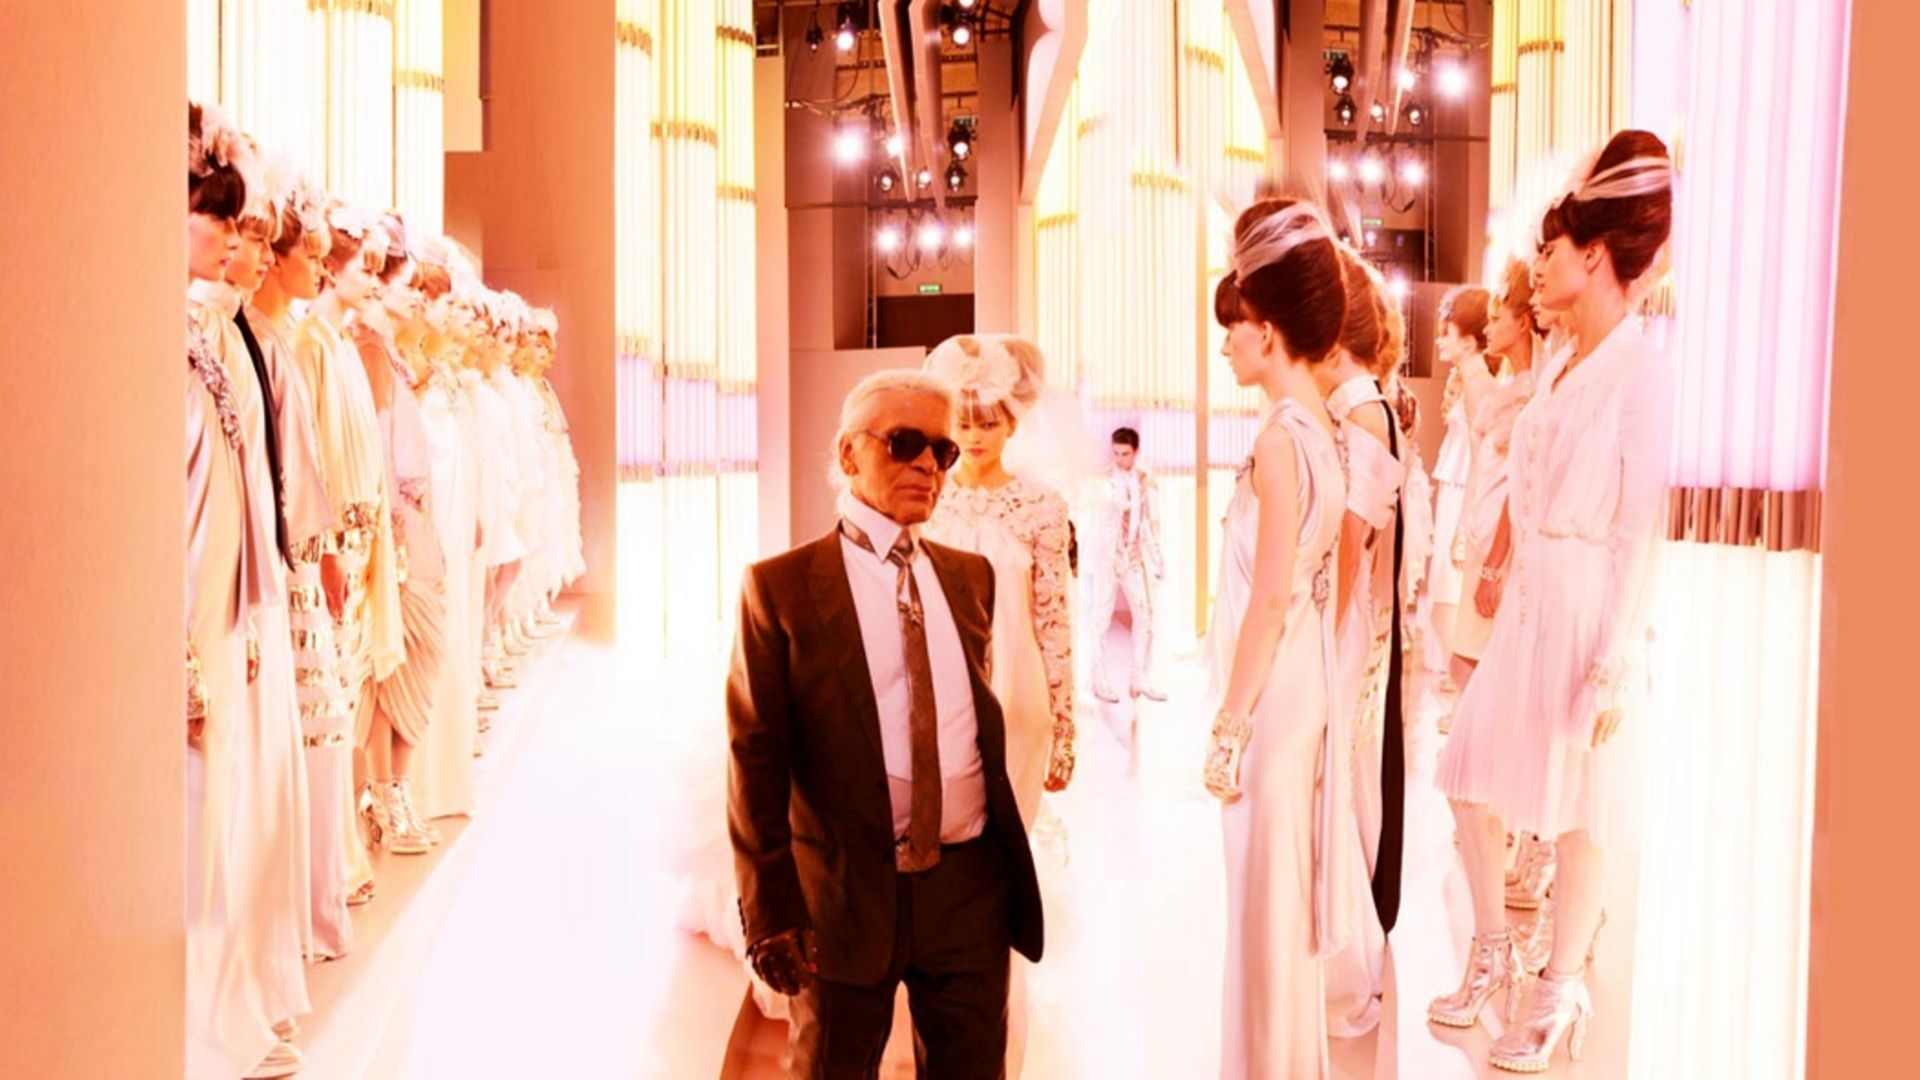 A Karl Lagerfeld Tribute Exhibit Has Just Launched In Paris